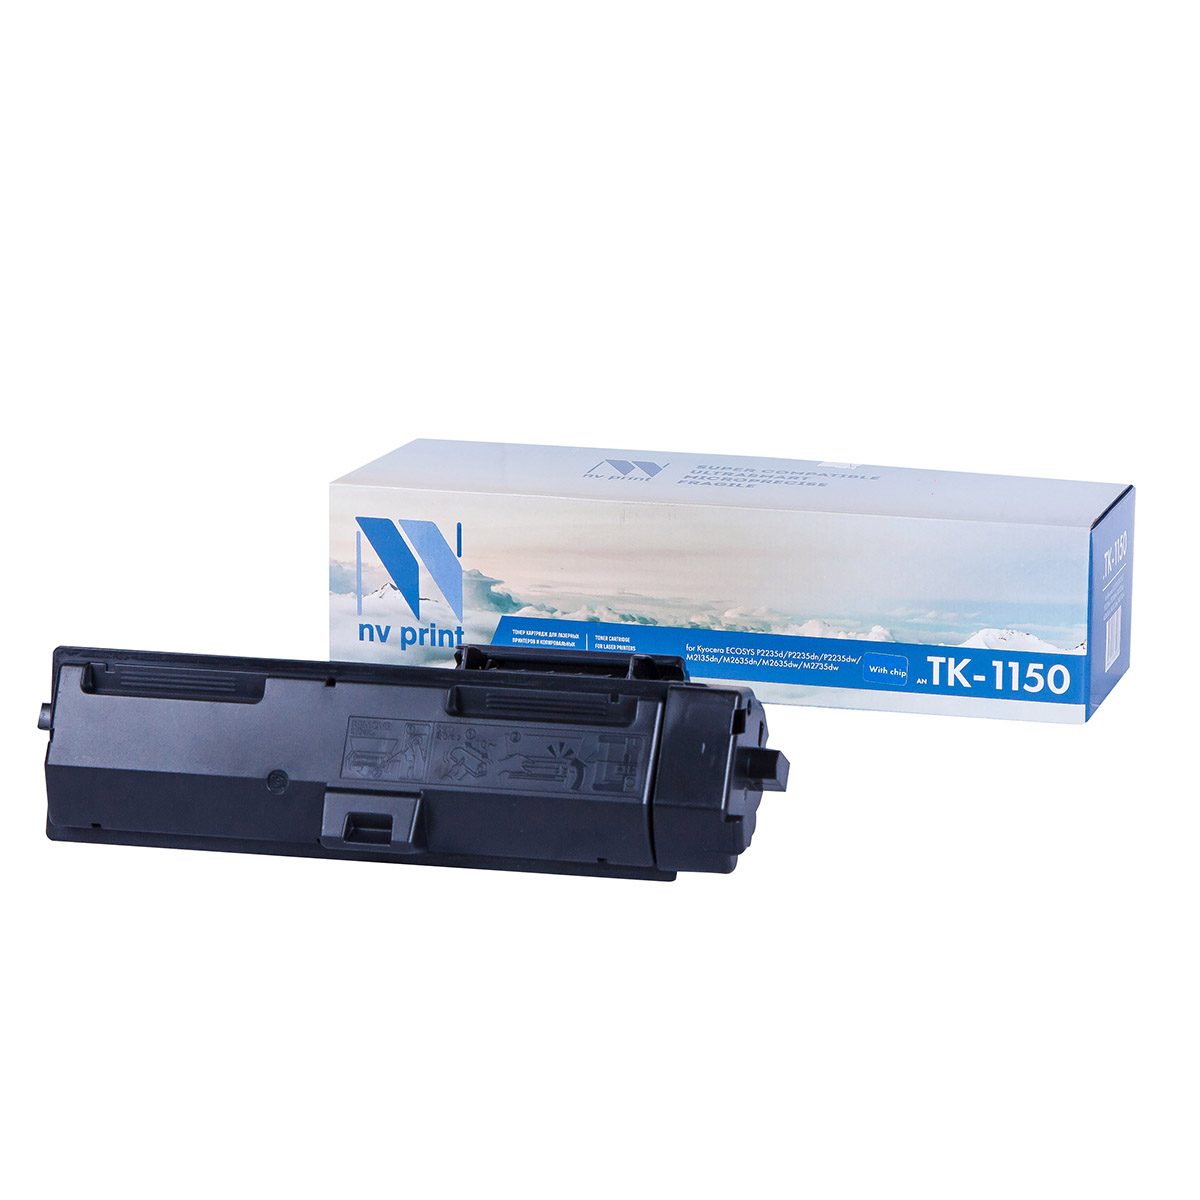 Фото - Картридж NV Print TK-1150 для Kyocera ECOSYS P2235d/P2235dn/P2235dw/M2135dn/M2635dn/M2635dw/M2735dw (3000k) panasonic аlkaline power aaa lr03 2 шт